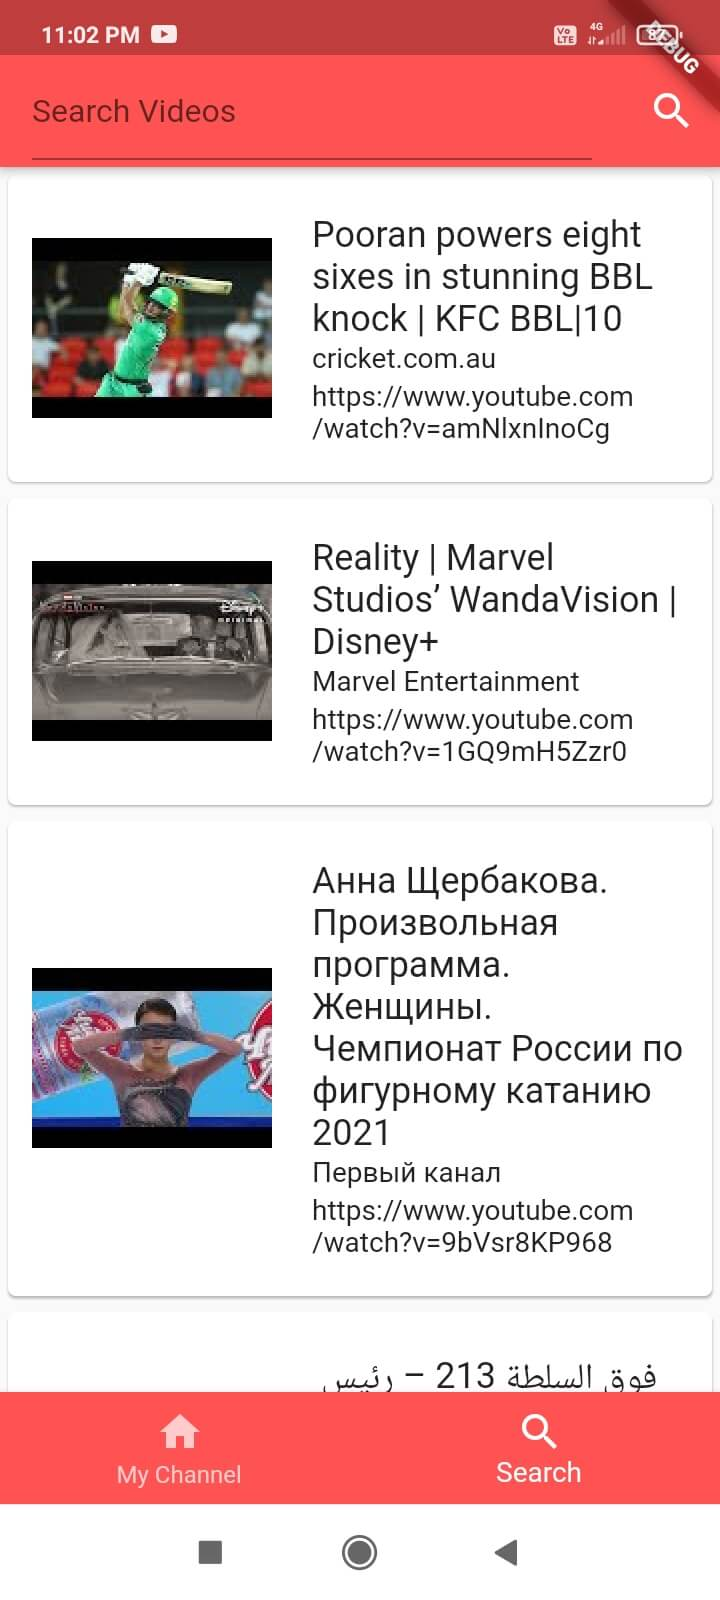 Youtube Video Search in flutter application